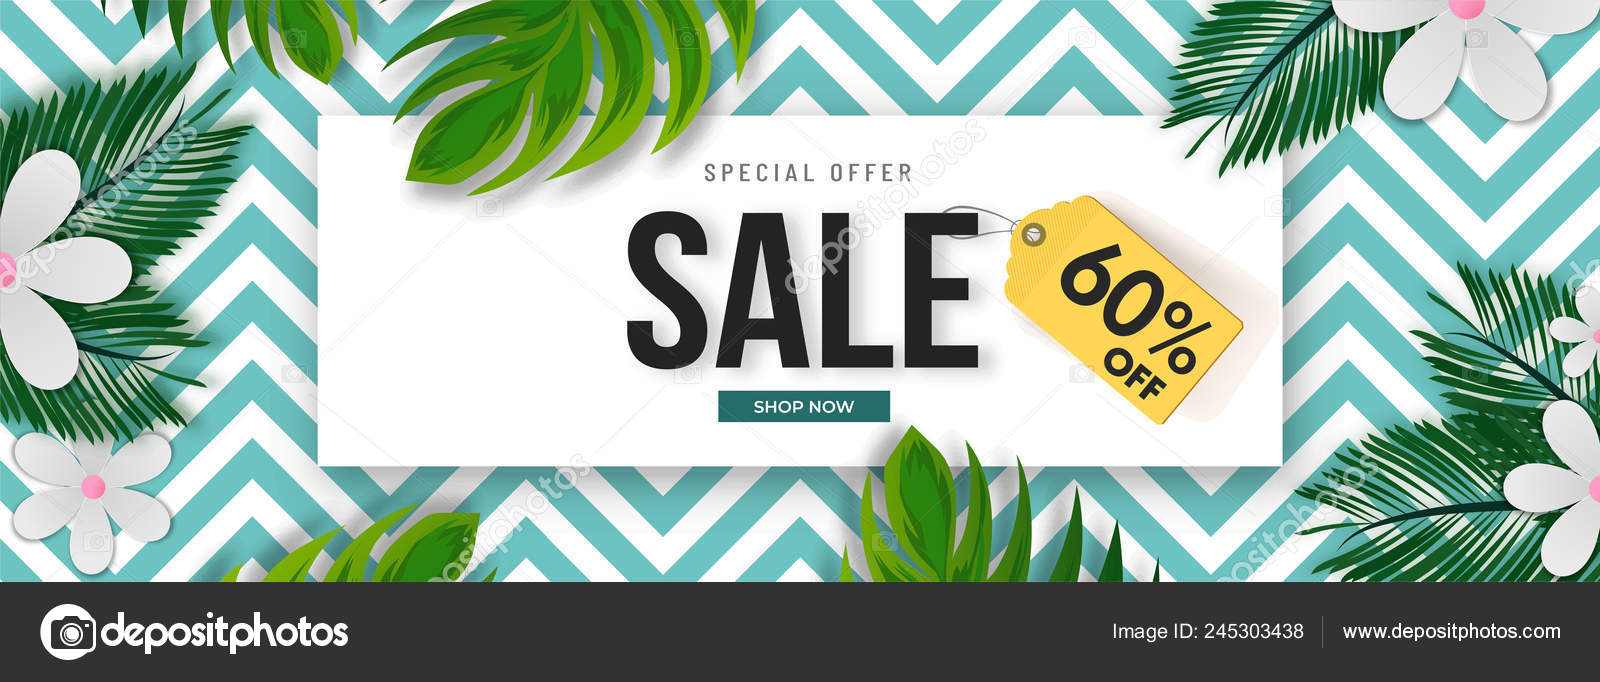 Advertising Sale Banner Header Design Discount Offer Tropical Leaves Flowers Stock Vector C Alliesinteract 245303438 This free watercolor tropical leaves can be good for creating designers portfolio as well. https depositphotos com 245303438 stock illustration advertising sale banner header design html